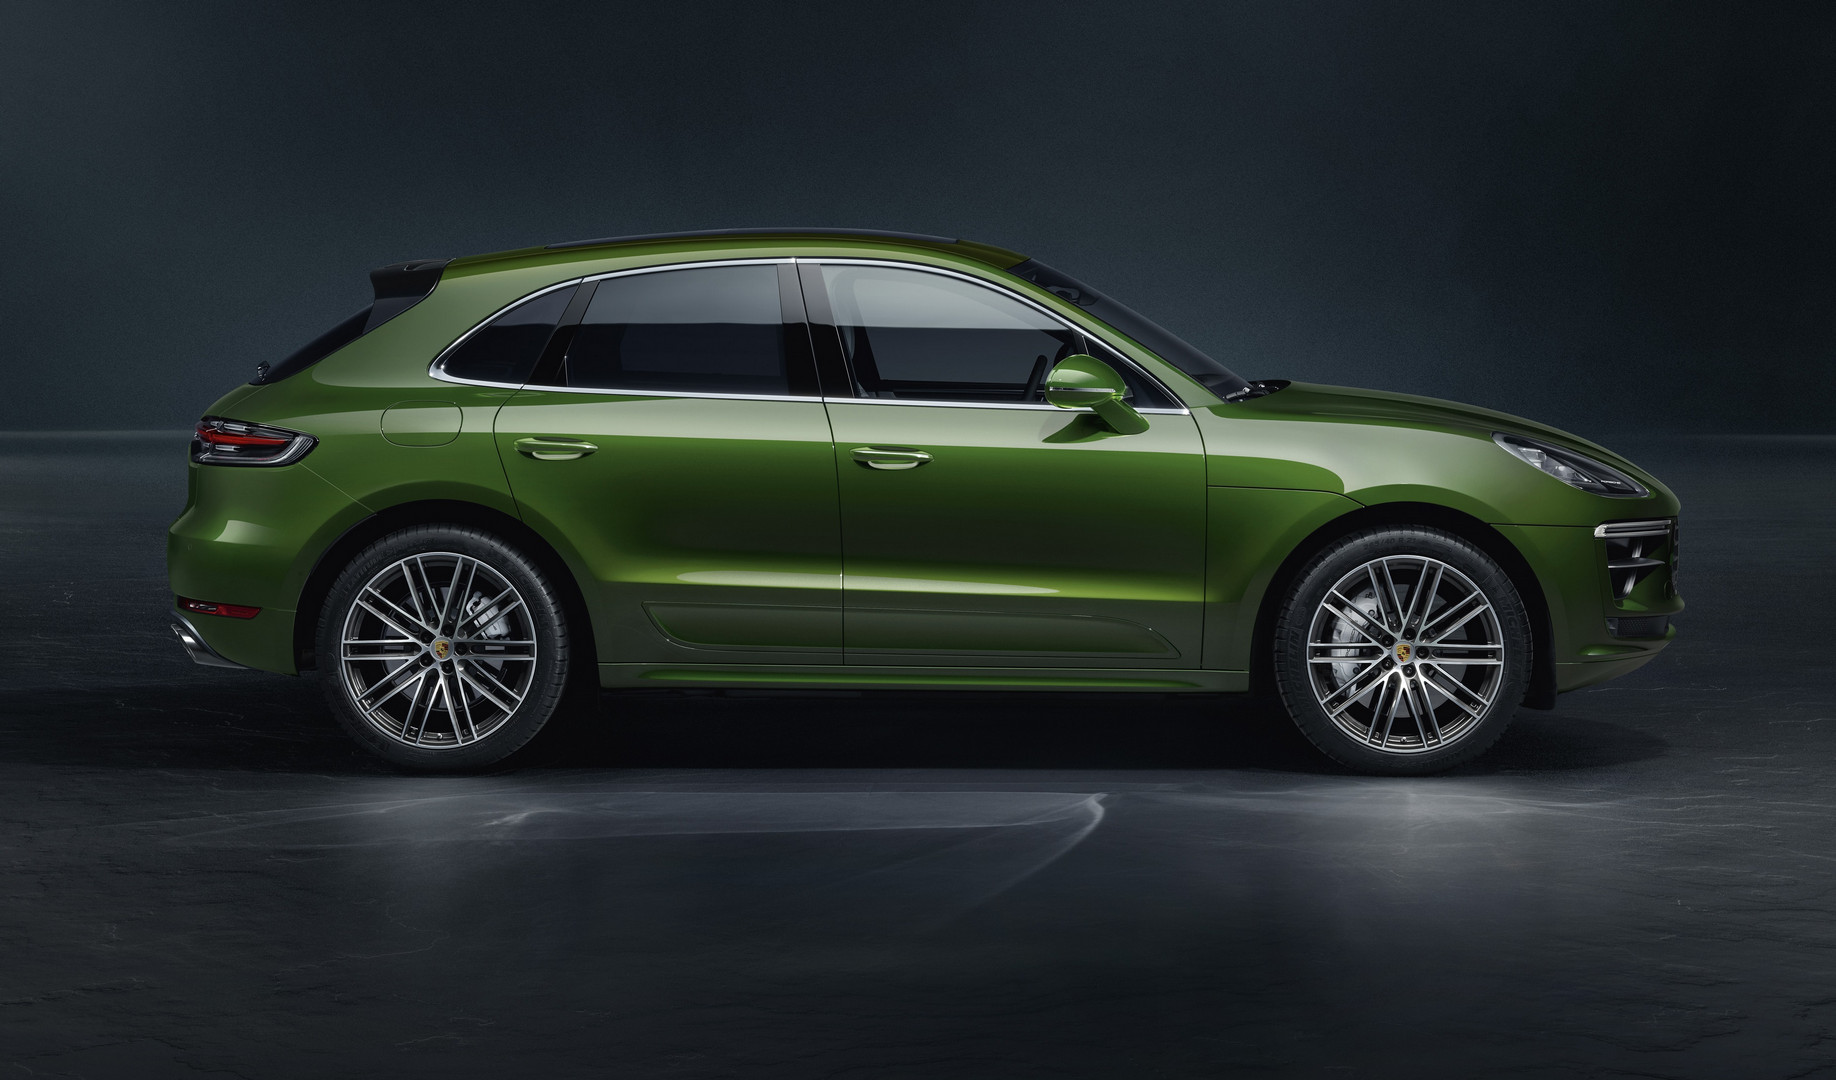 2020 porsche macan turbo revealed with 440hp gtspirit